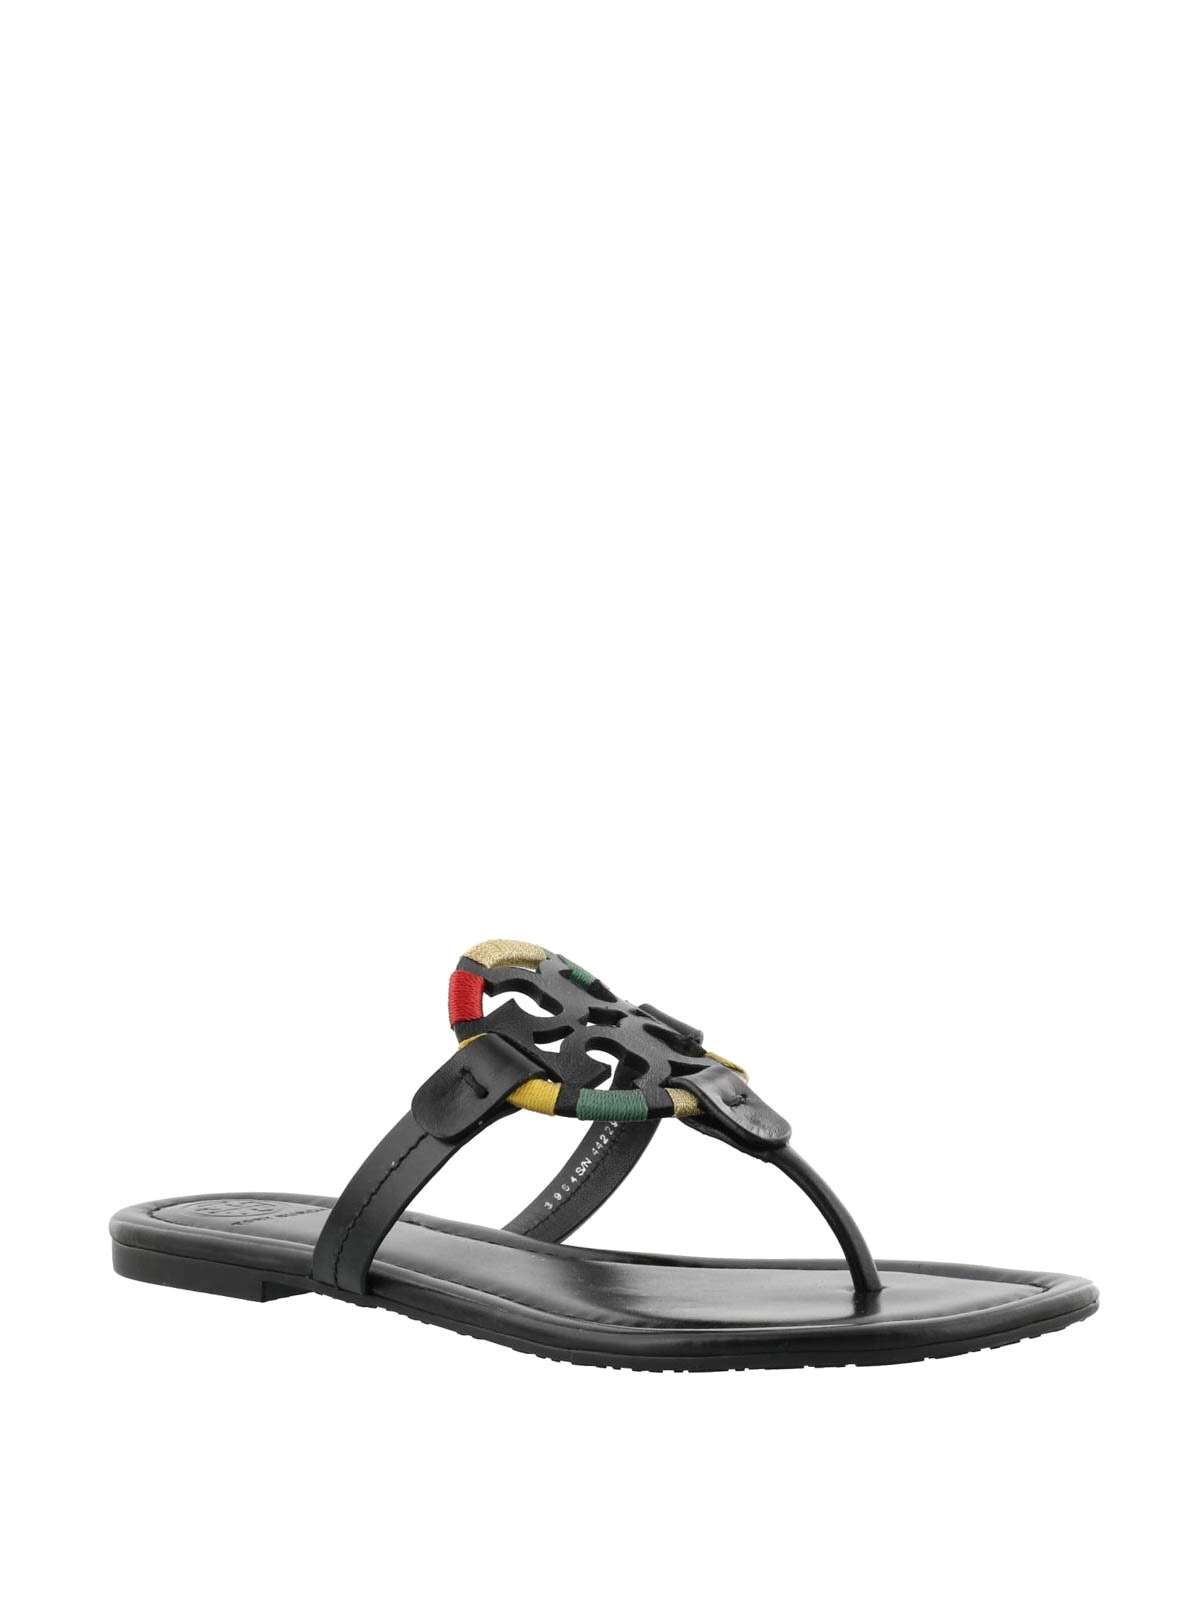 9b7581c9e764 Tory Burch - Miller leather thong sandals - sandals - 44229 890